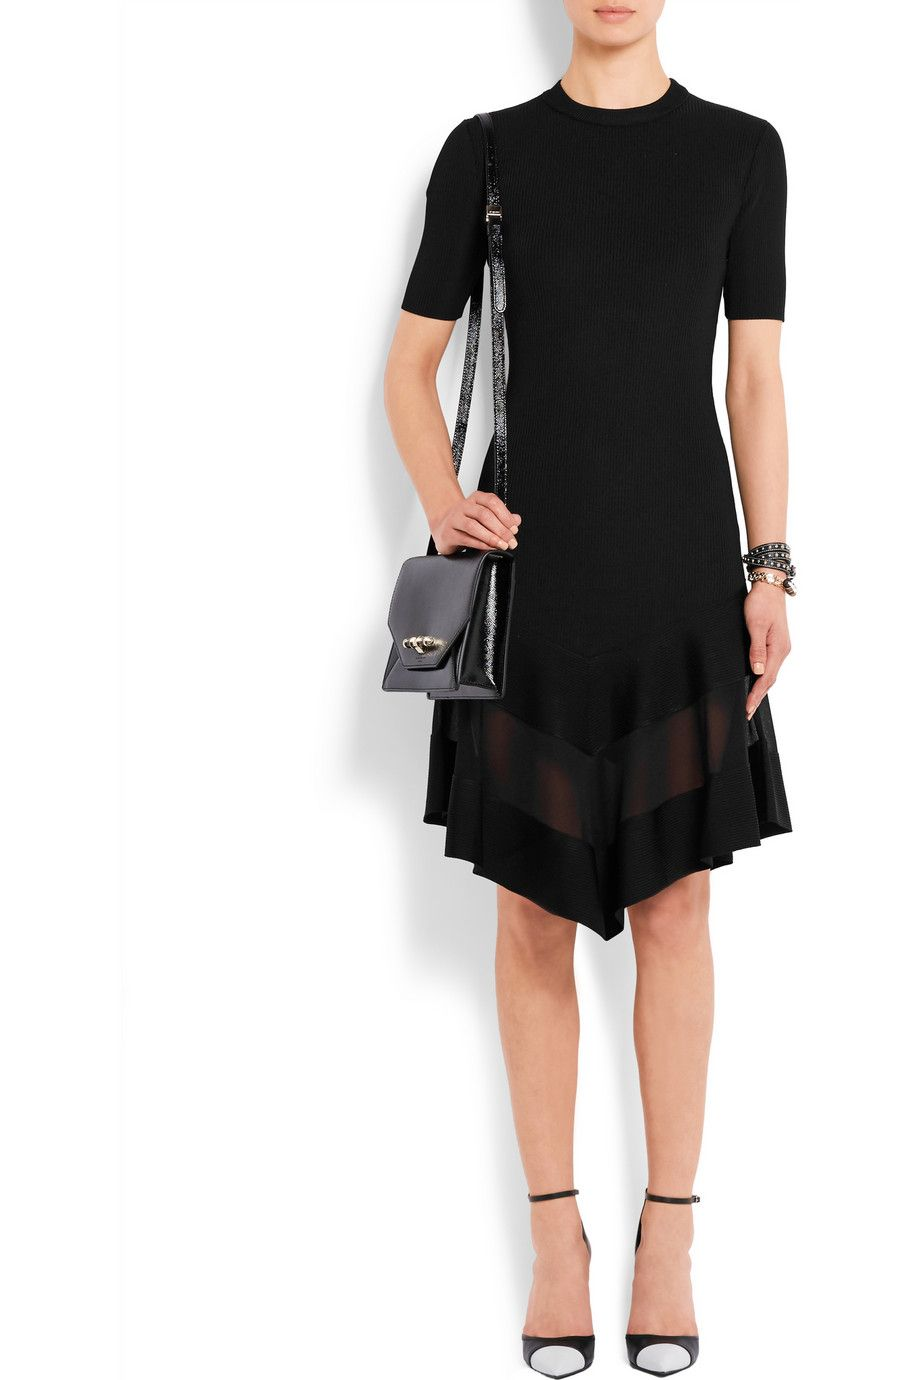 Givenchy Woman Organza-paneled Dress In Black Ribbed-knit Black Size M Givenchy SpClXwR